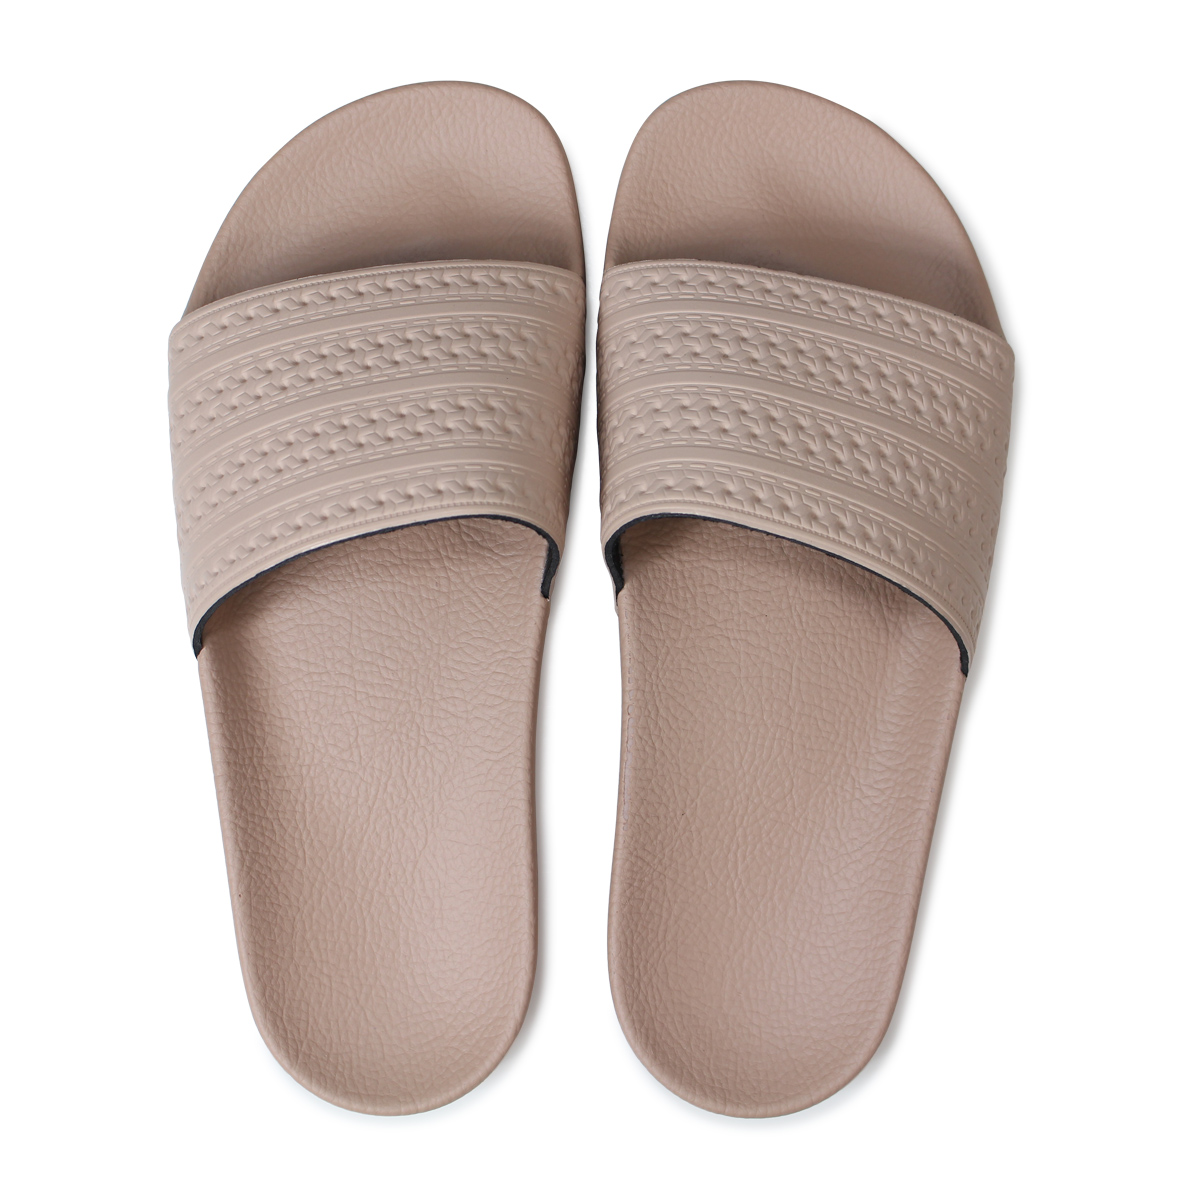 7390475f594 adidas Originals WOMENS ADILETTE SLIDES アディダスアディレッタレディースサンダルシャワーサンダル CQ2235  pink beige originals  load planned Shinnyu load in ...